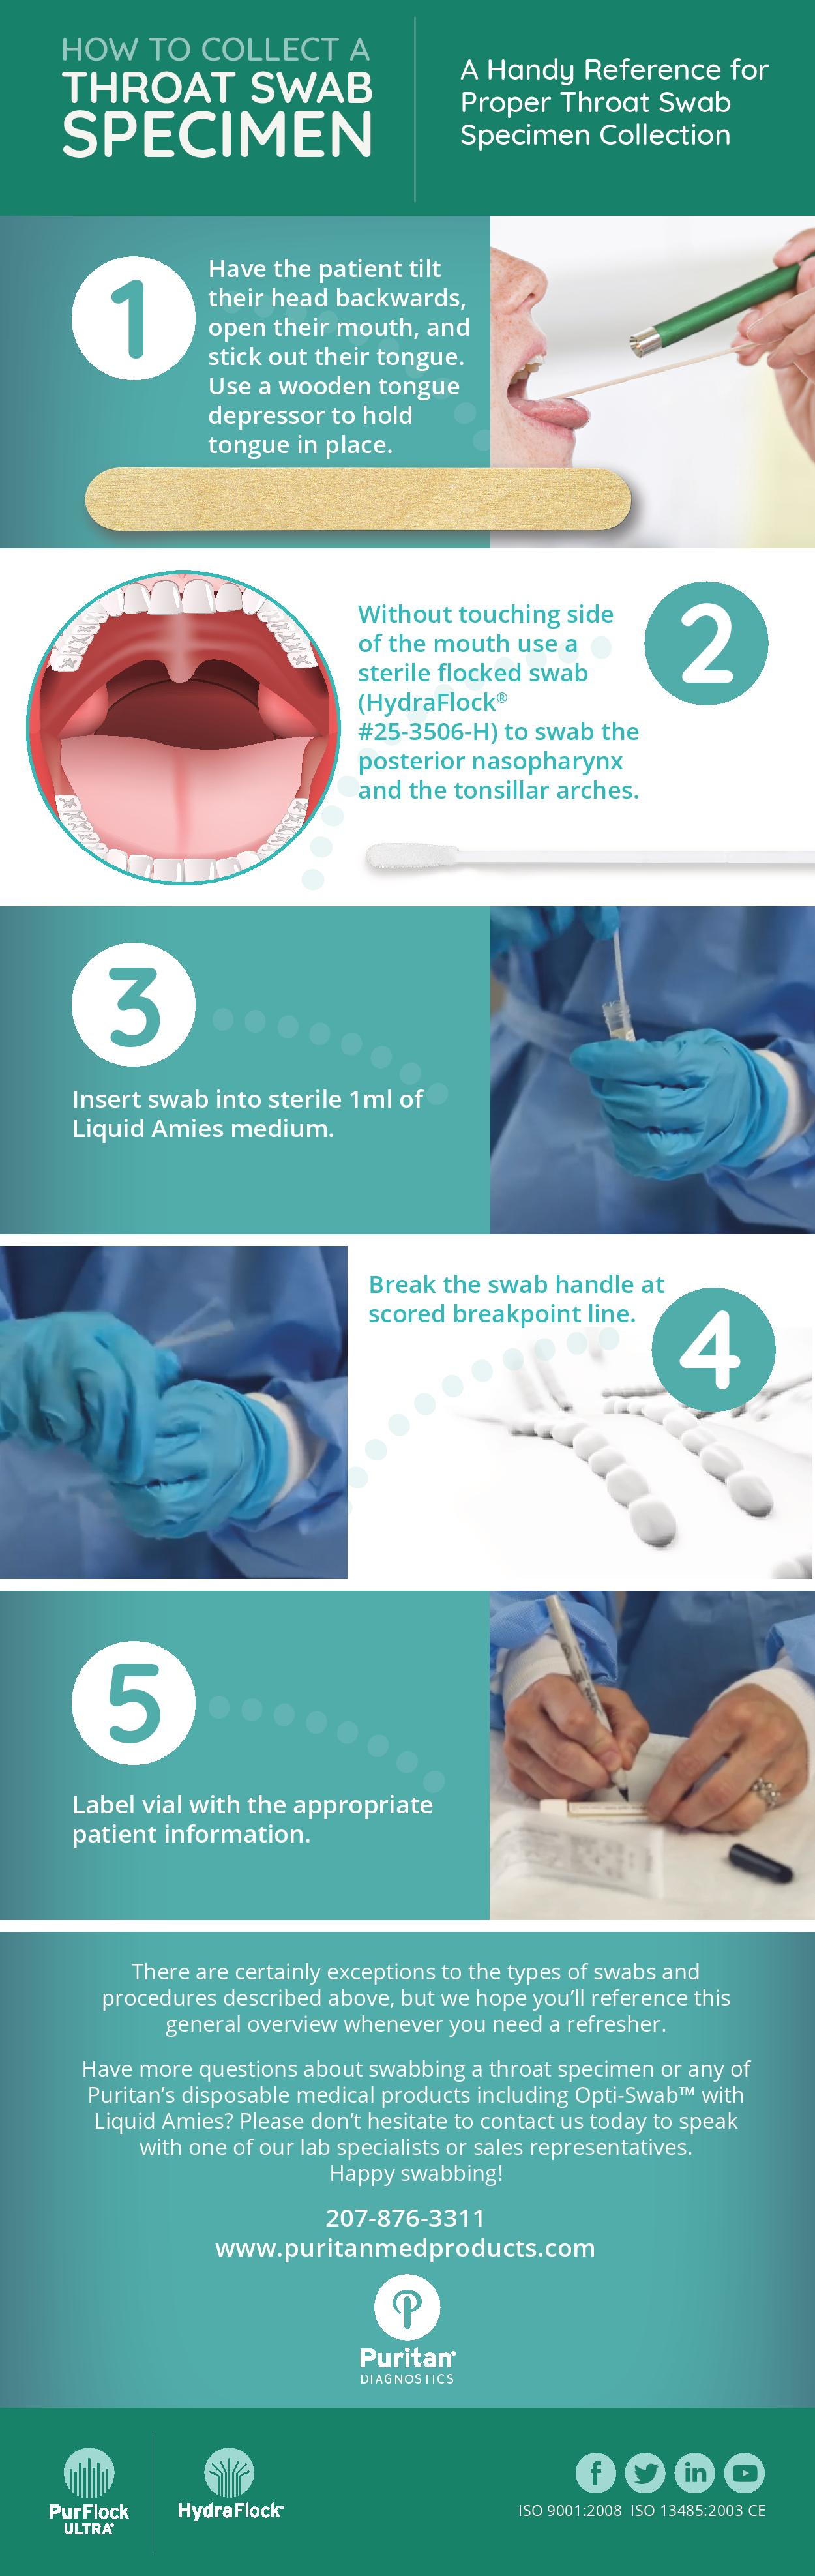 How to Collect a Throat Specimen Infographic - Step by Step